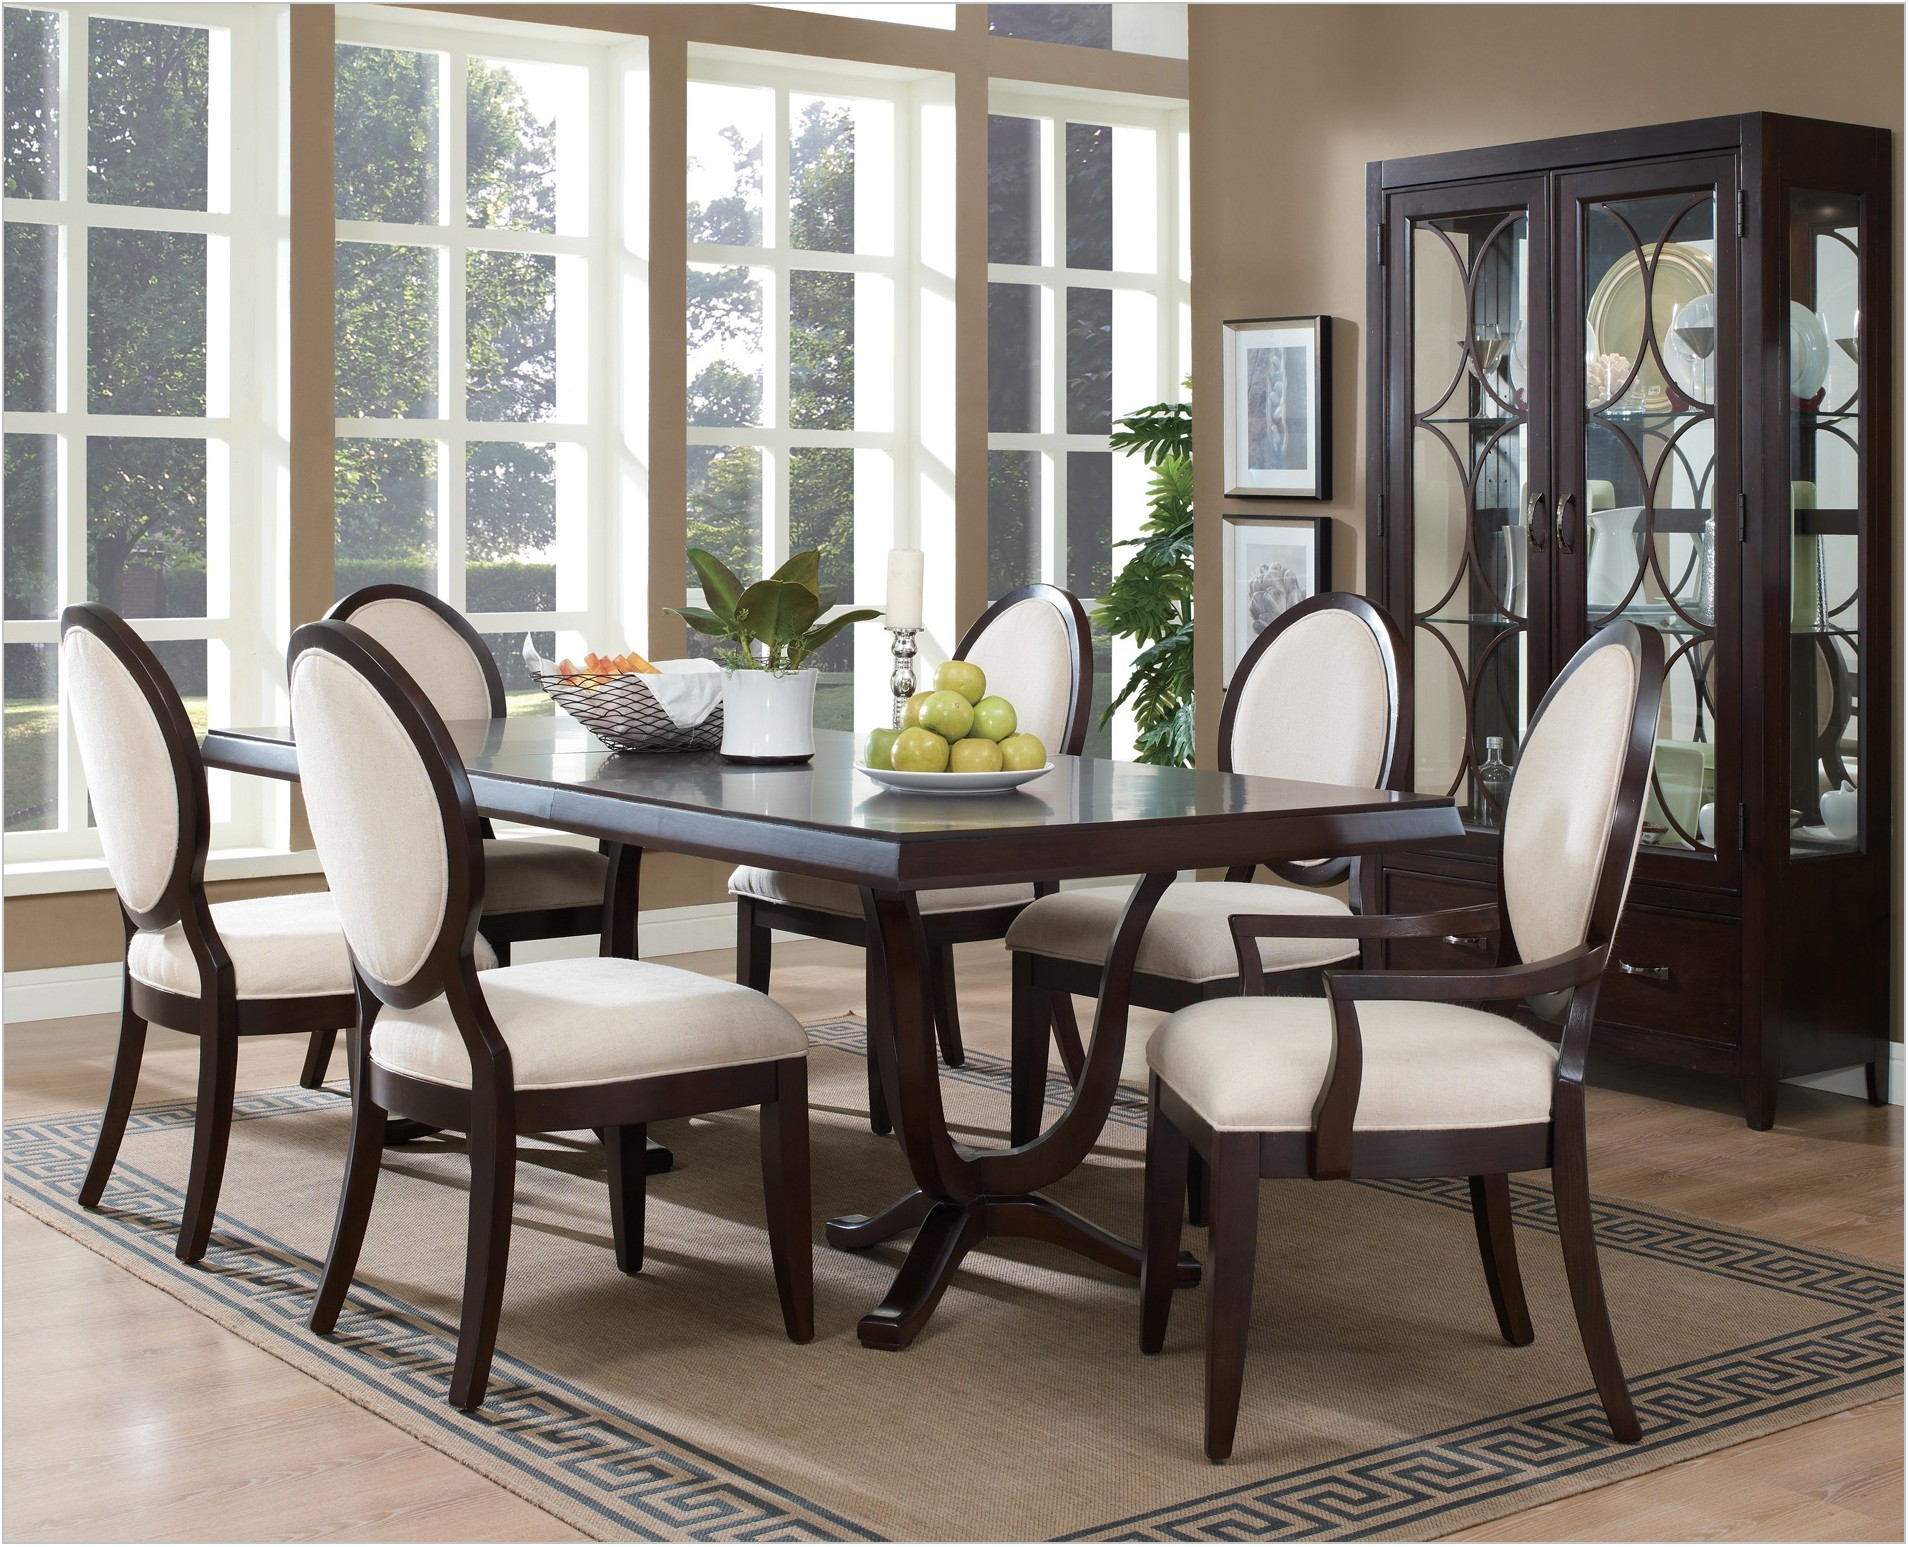 American Drew Dining Room Table And Chairs